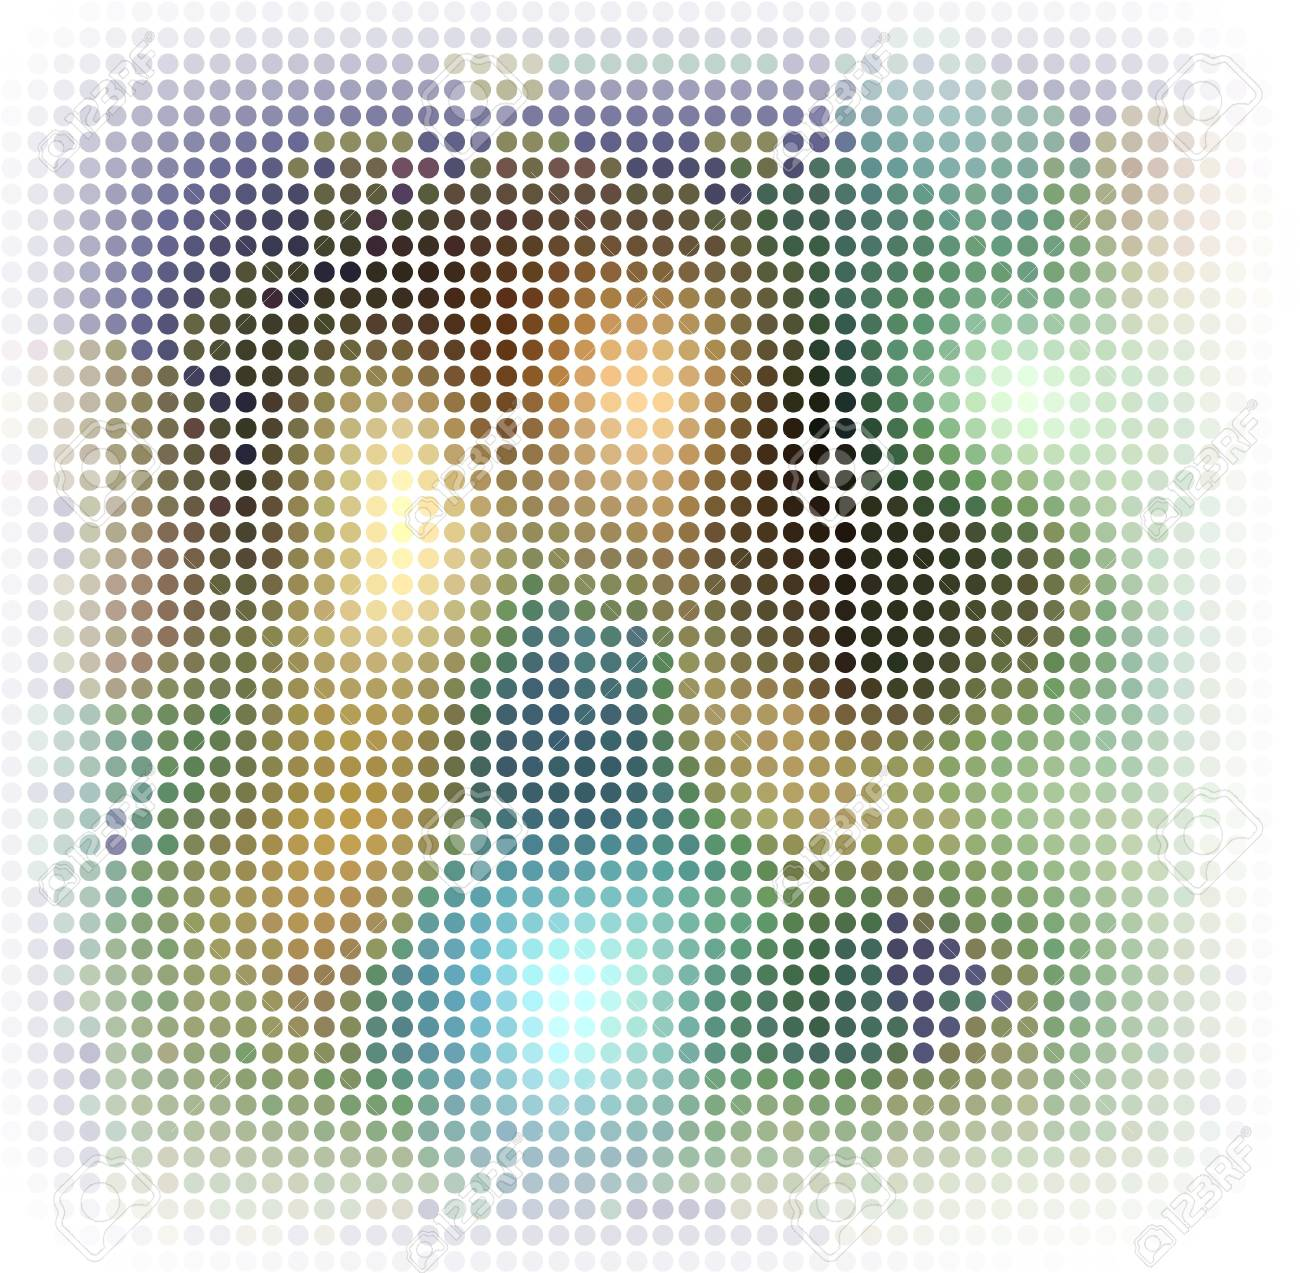 Abstract background. Simply change. Stock Photo - 15809013